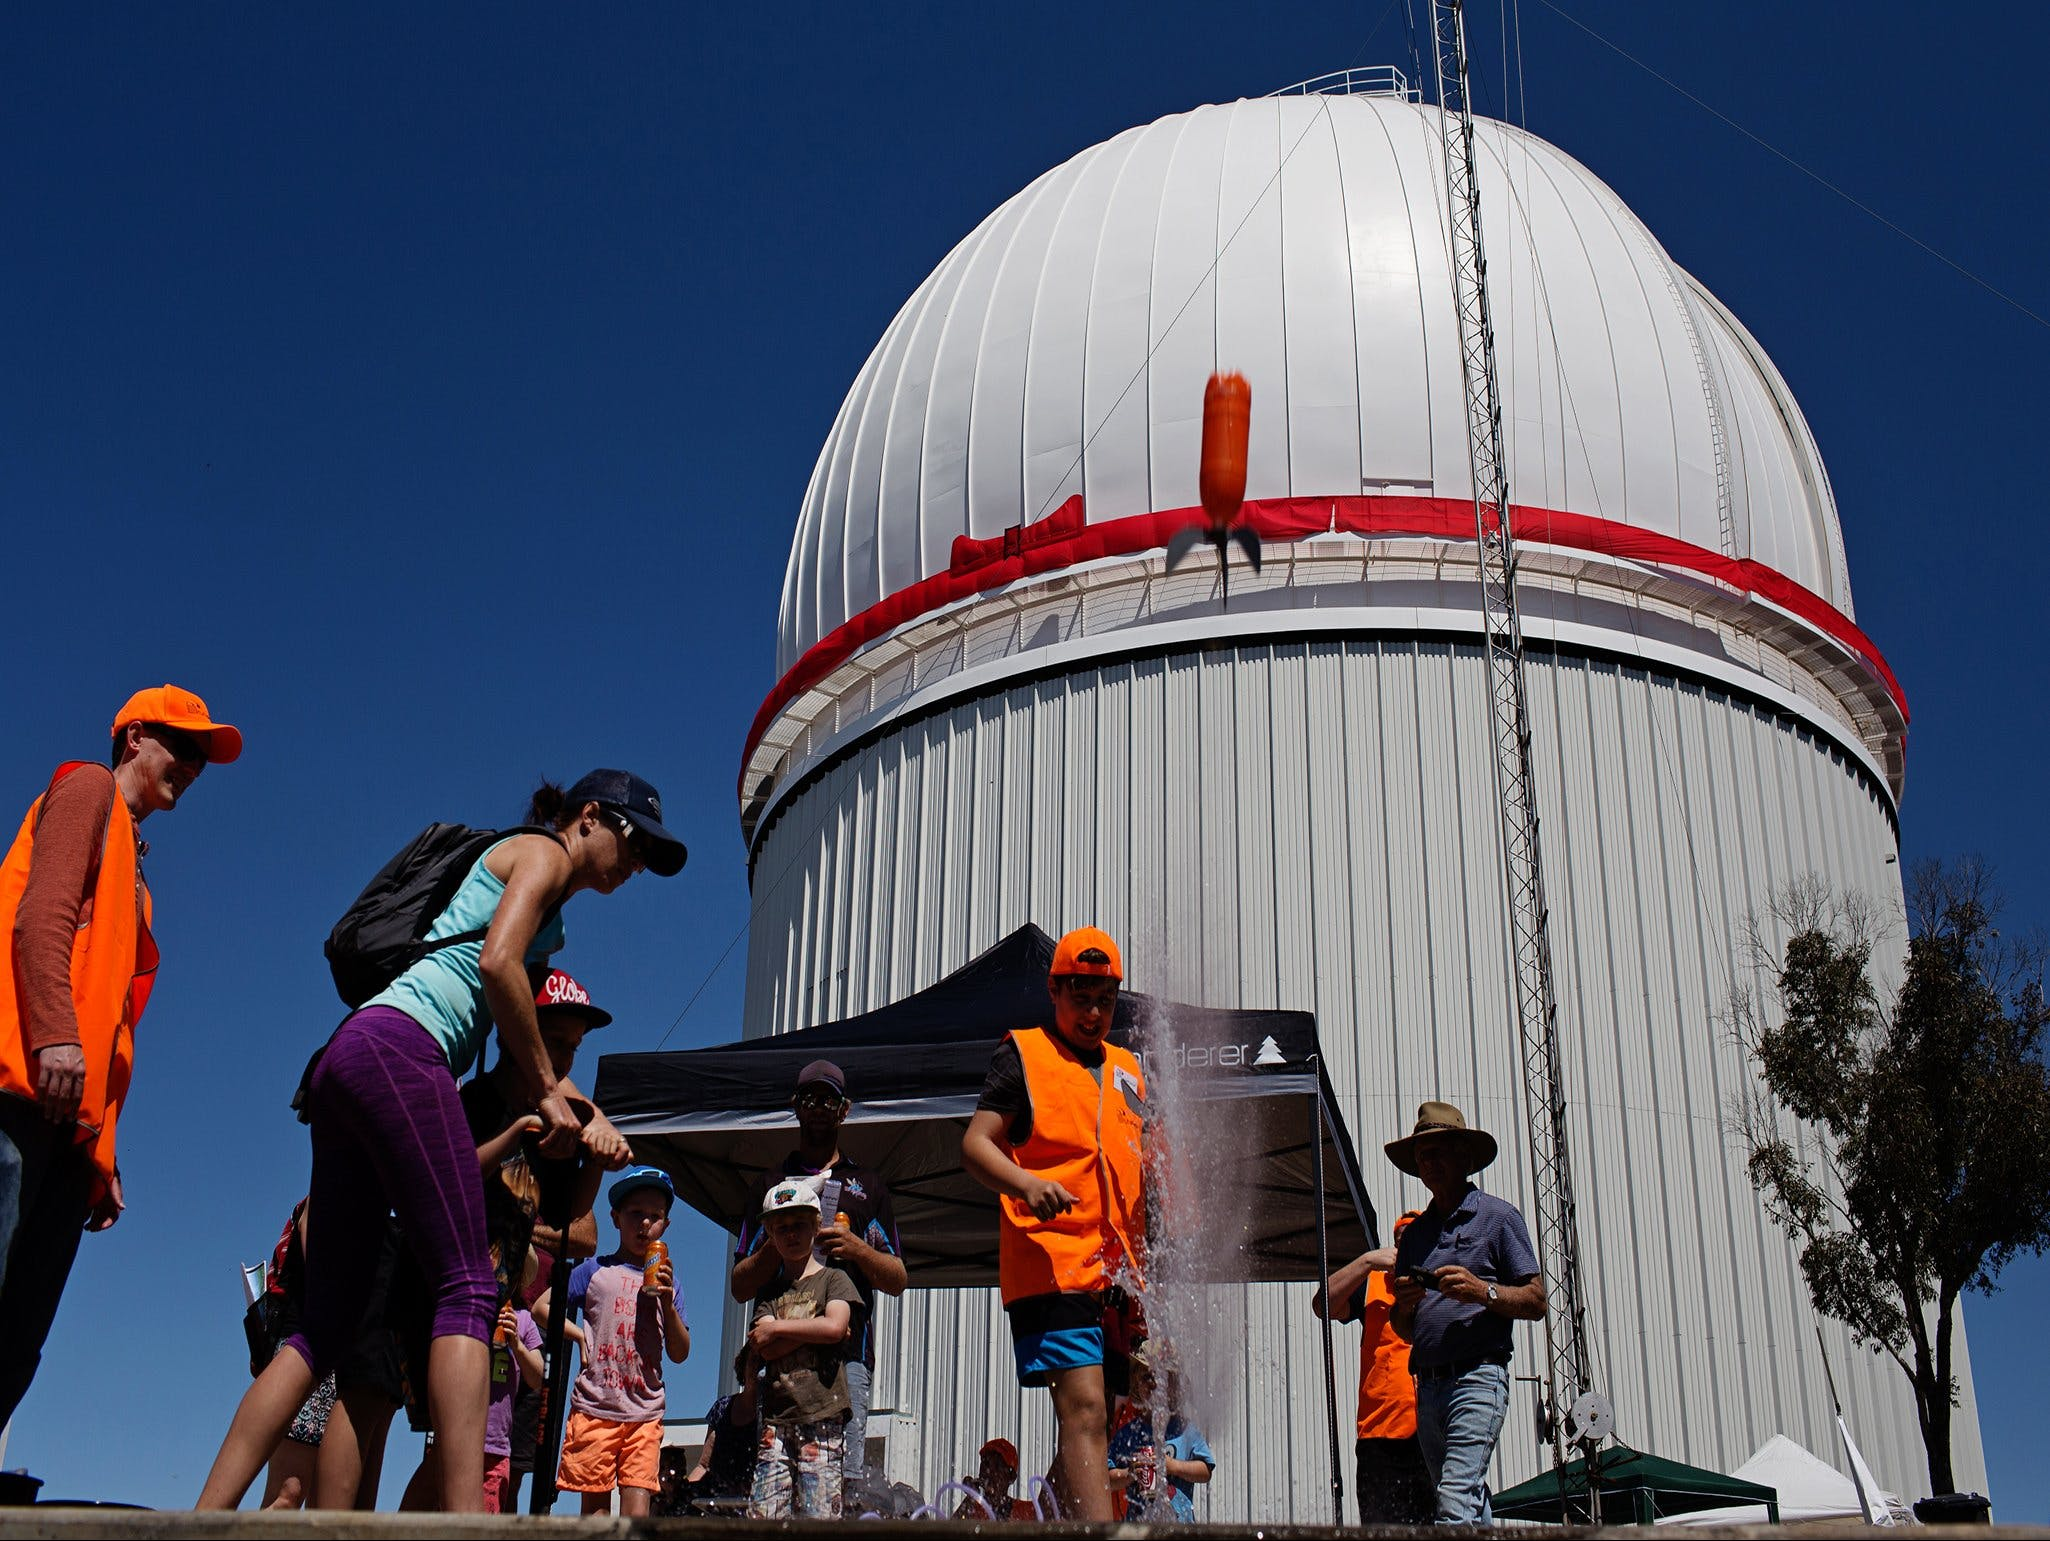 Siding Spring Observatory Open Day - Cancelled due to COVID 19 - Surfers Gold Coast